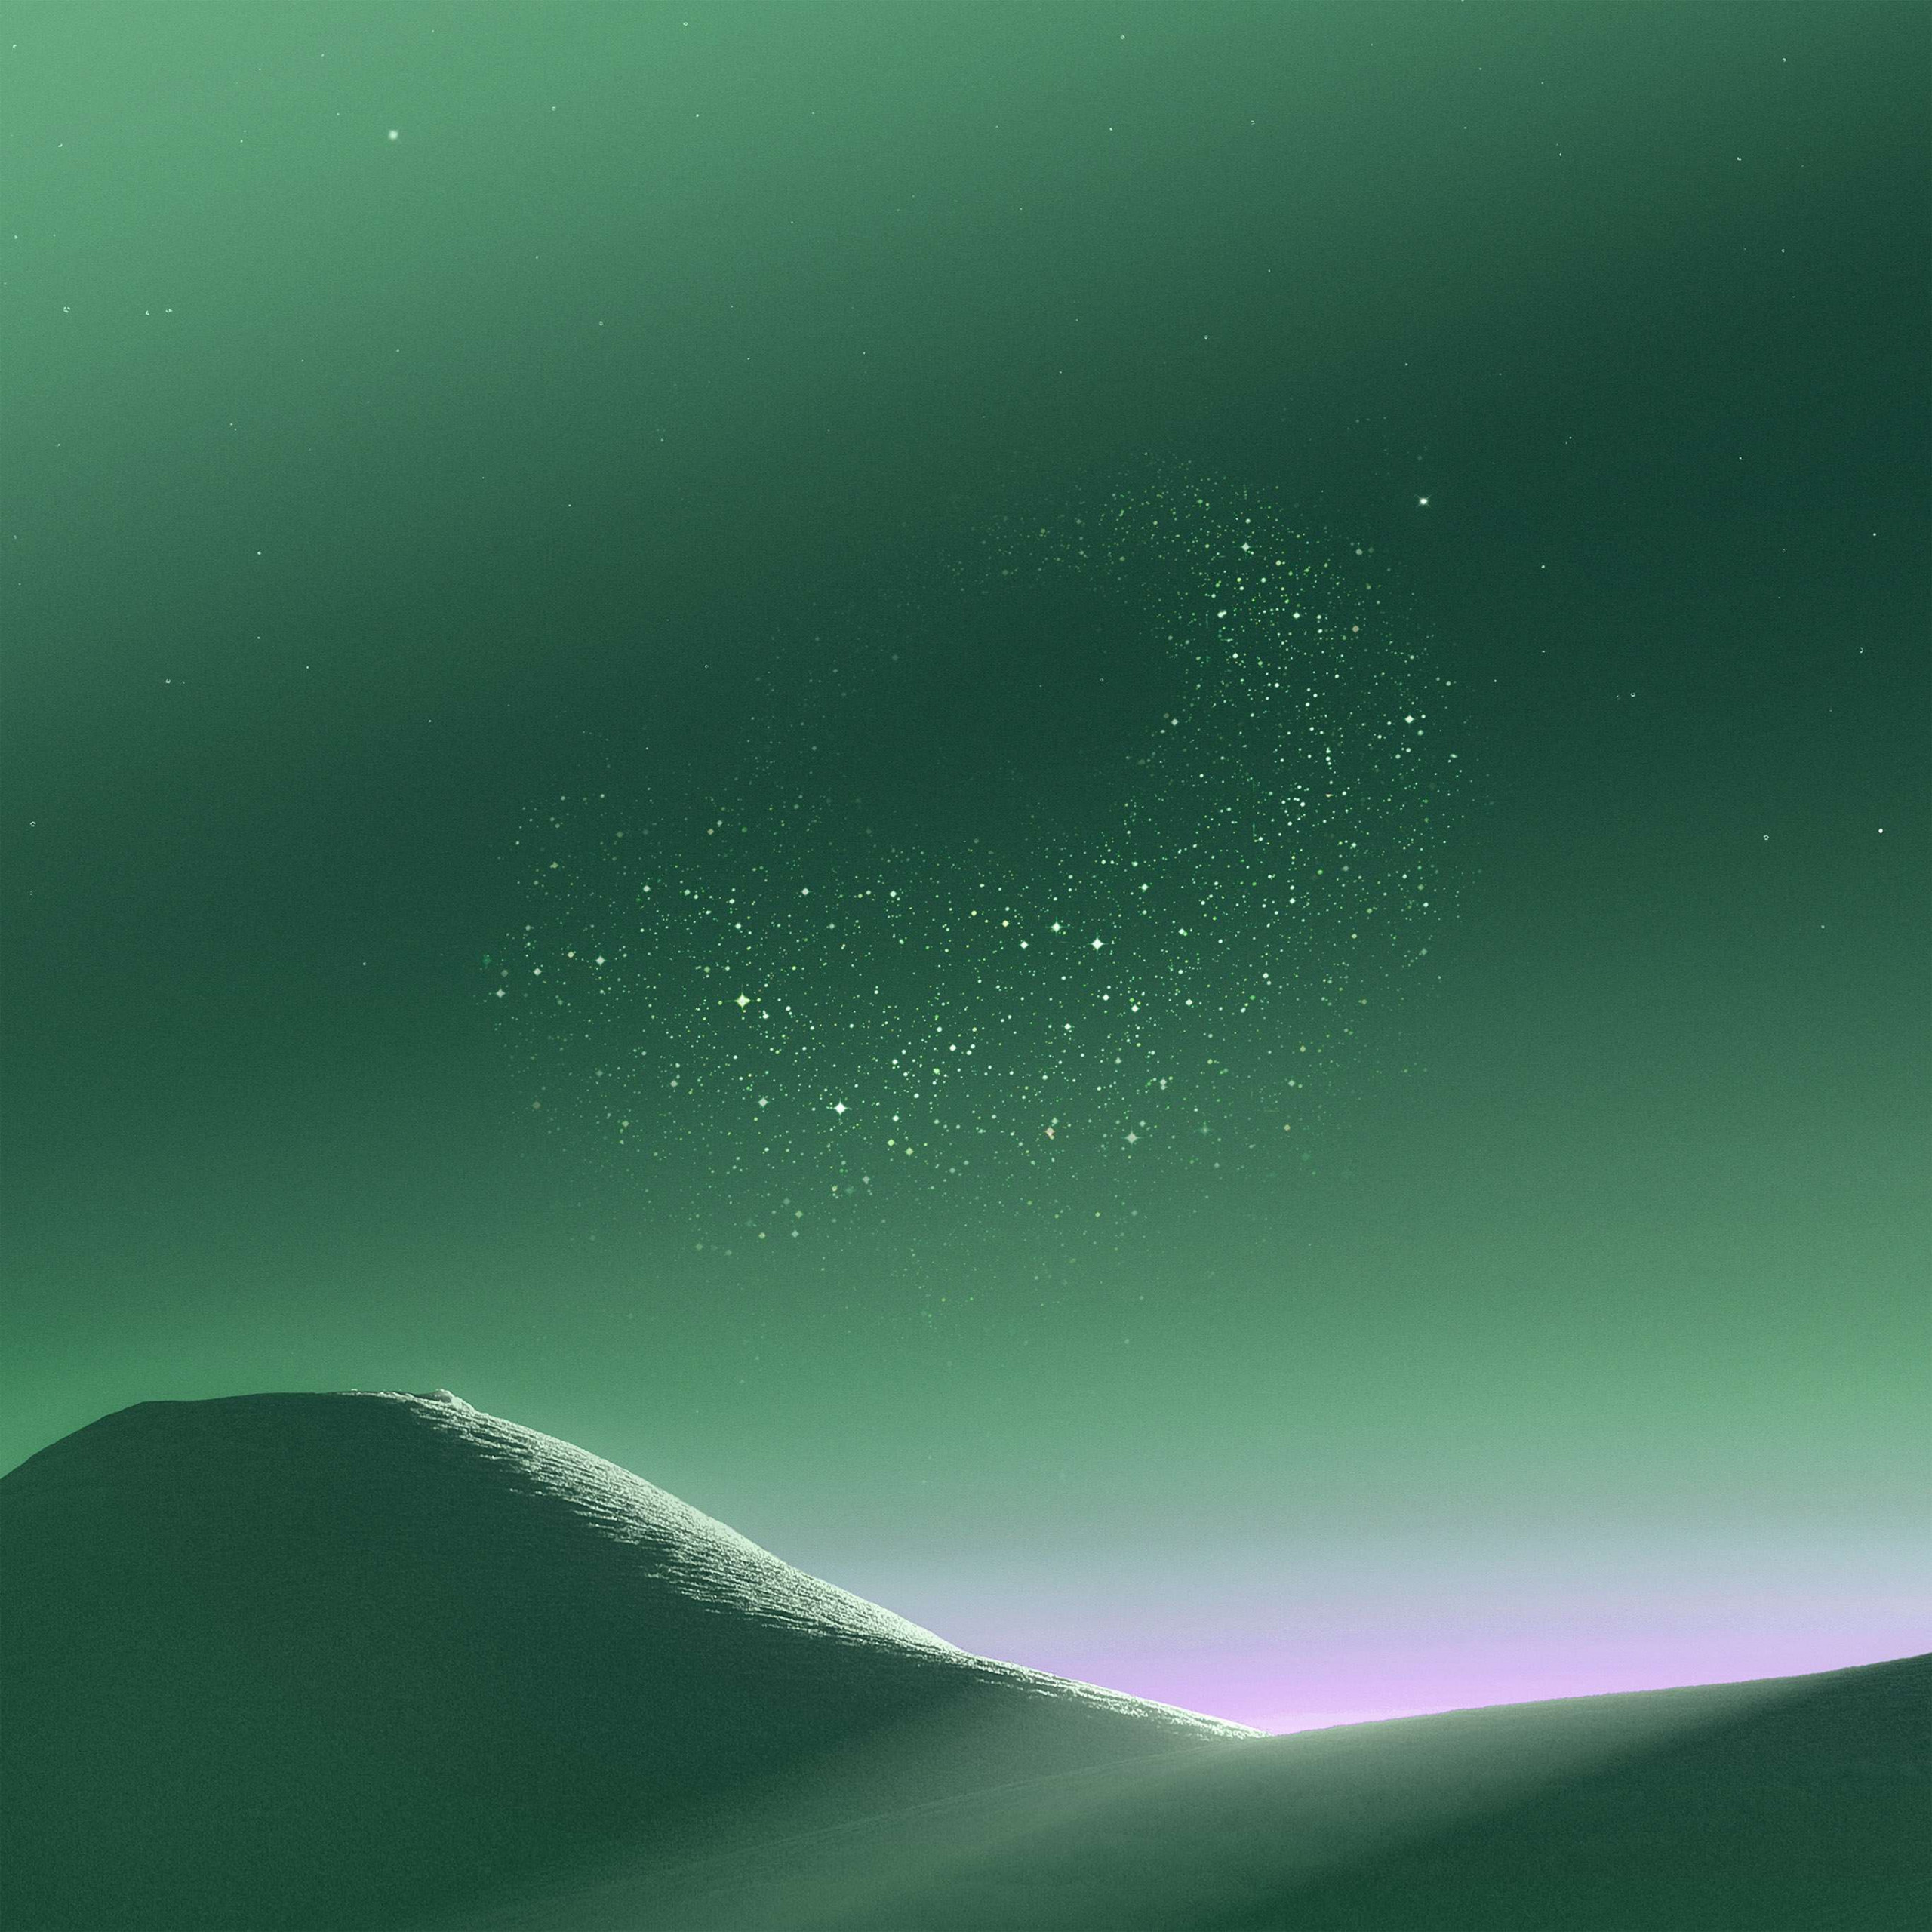 papers vx22 galaxy s8 green pattern background 40 wallpaper